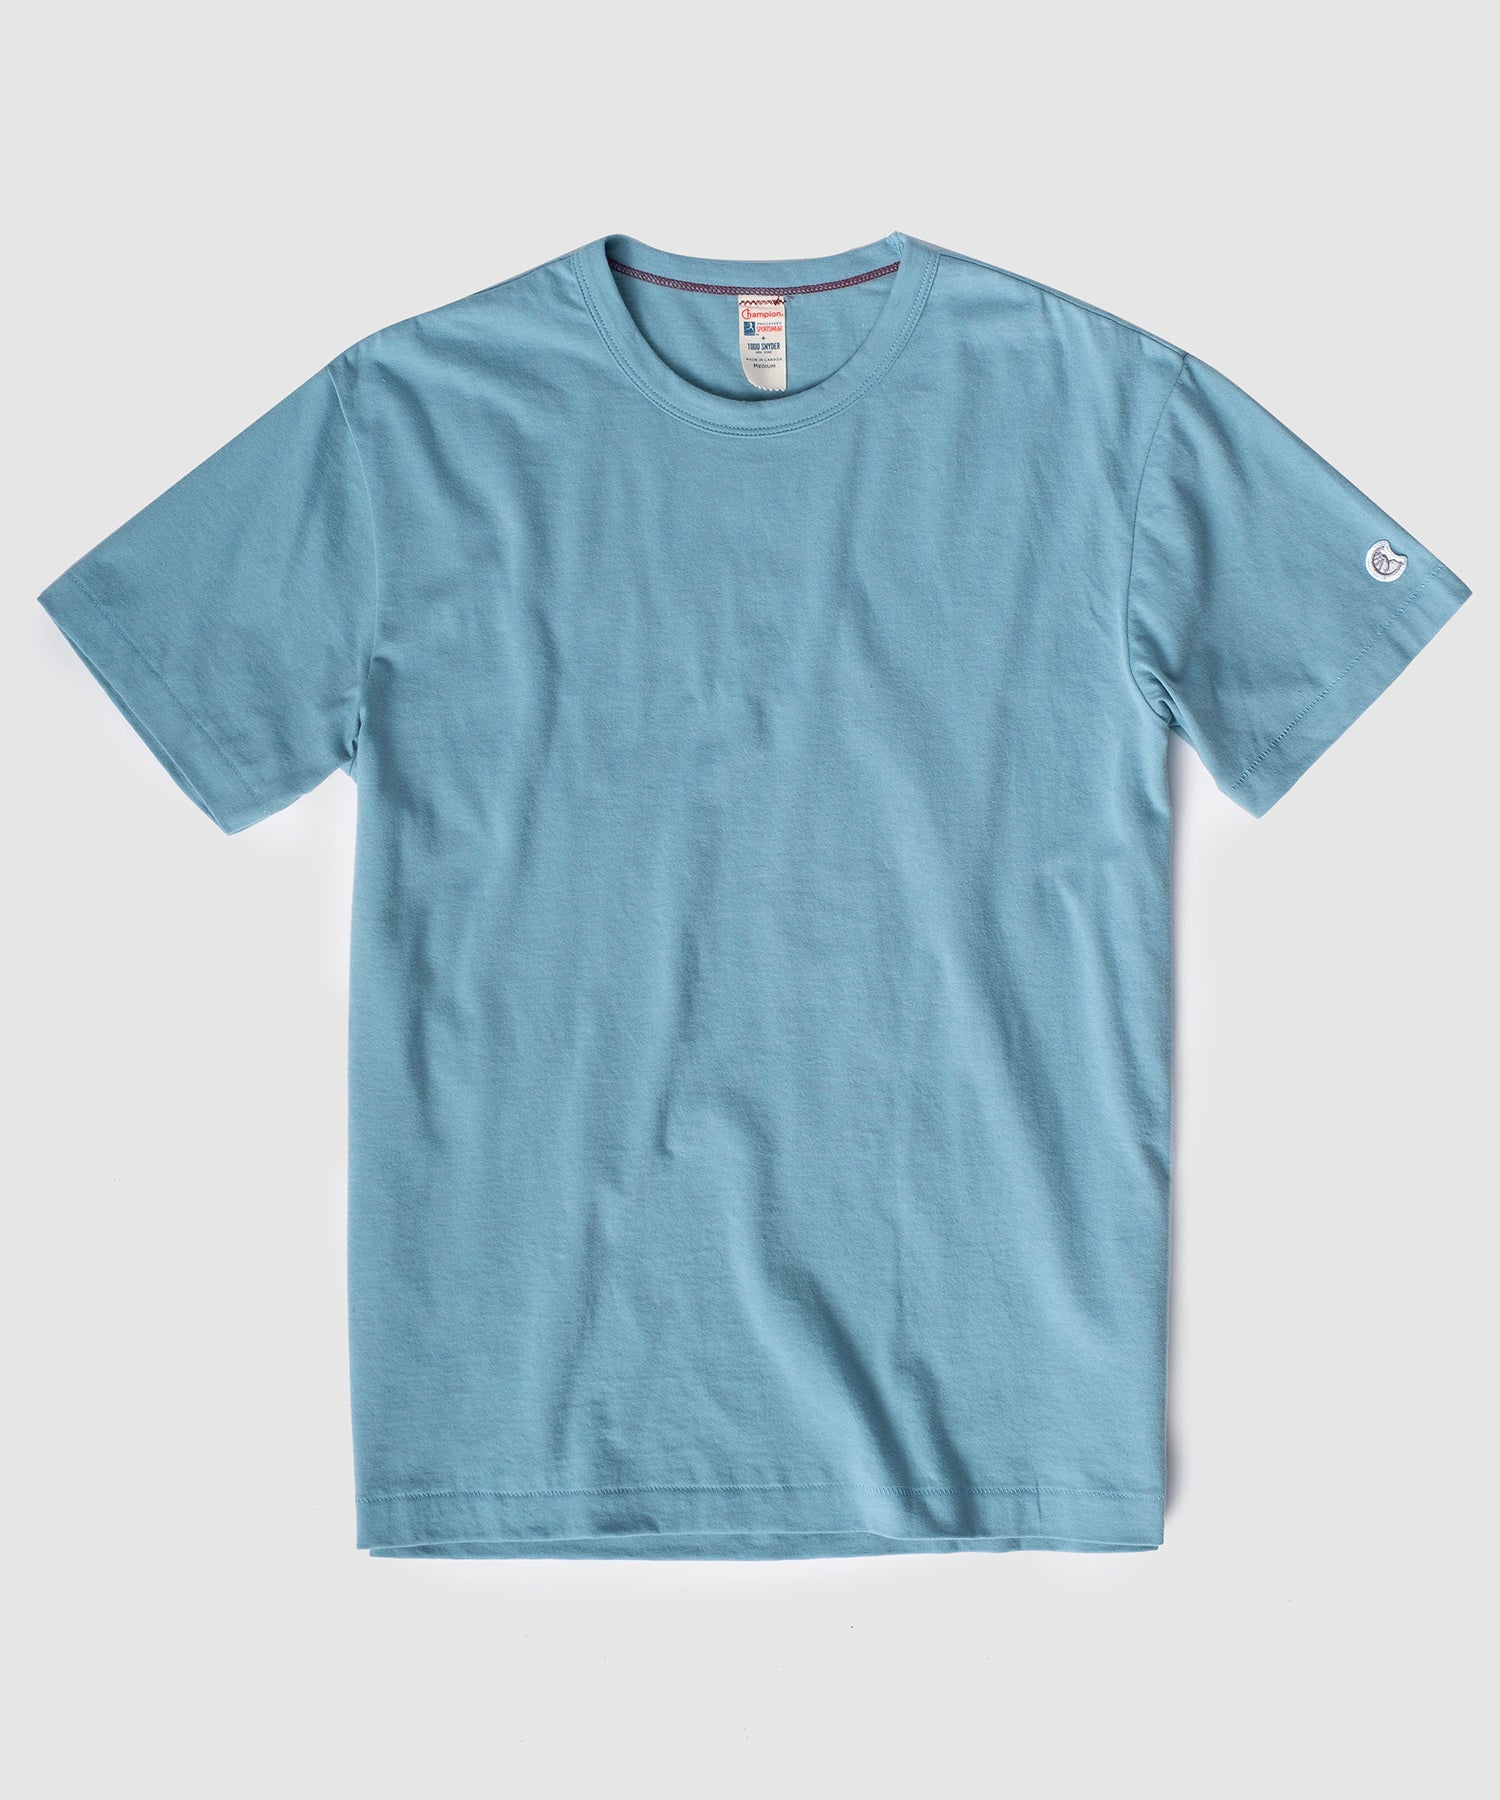 Champion Basic Jersey Tee in Bluestone